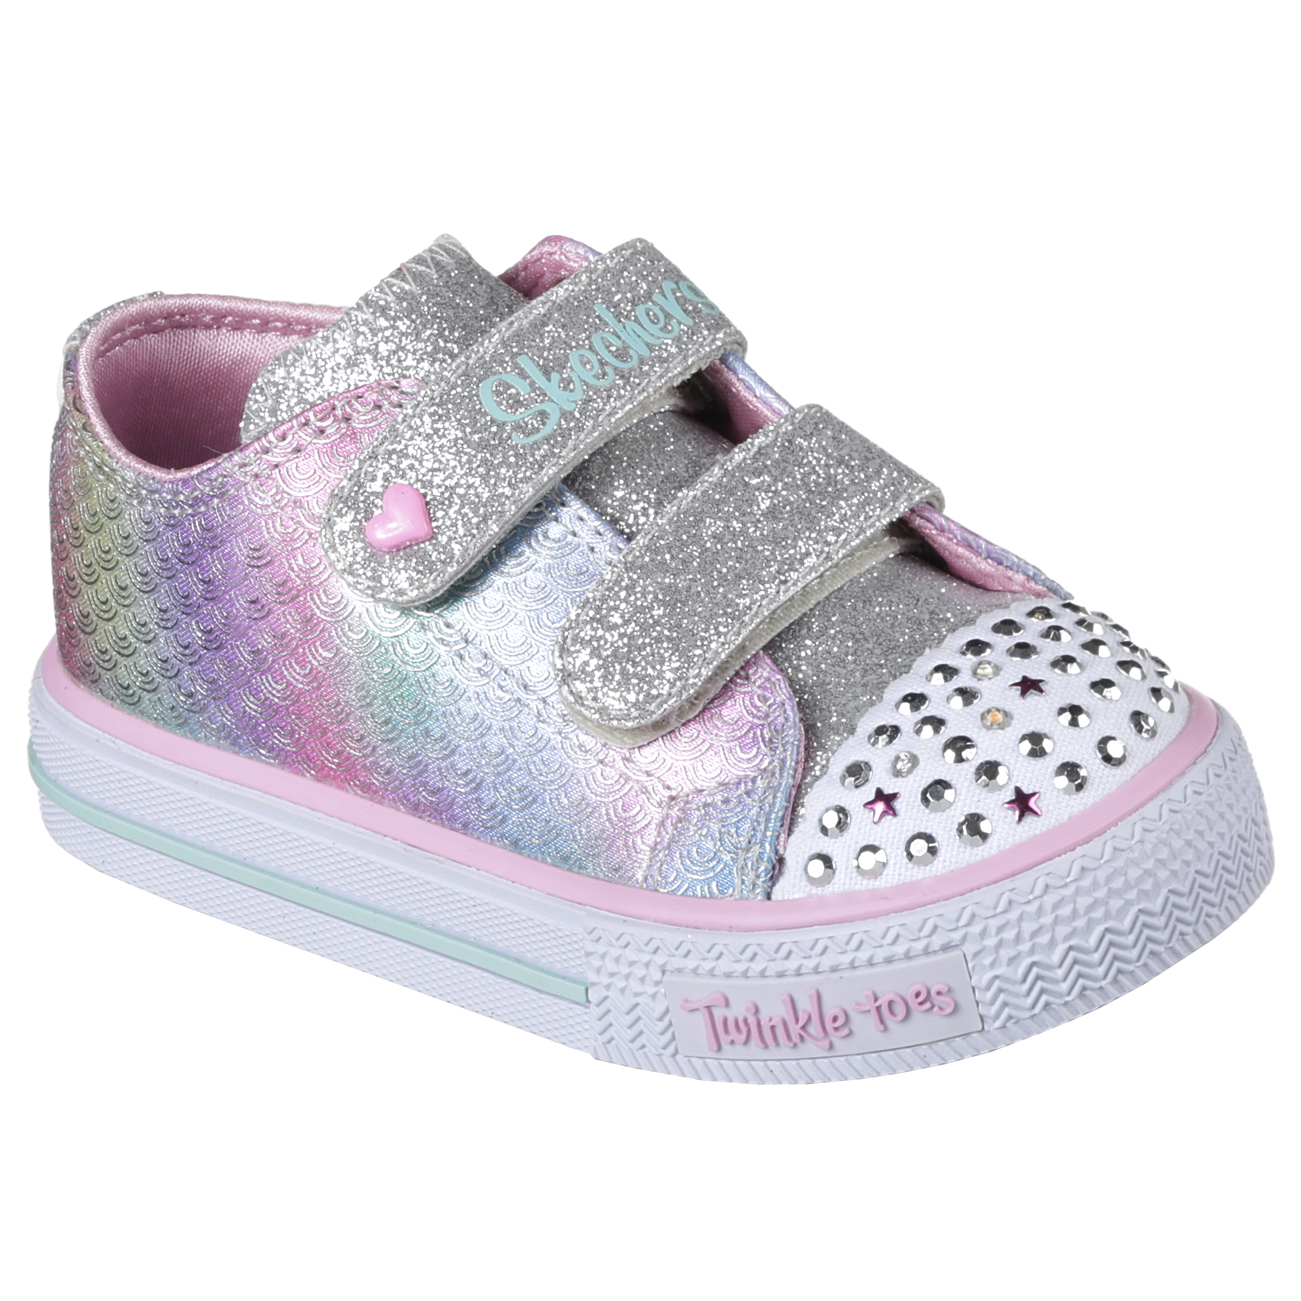 Kids Girls Infant Skechers Twinkle Toes Shuffled Ms. Mermaid